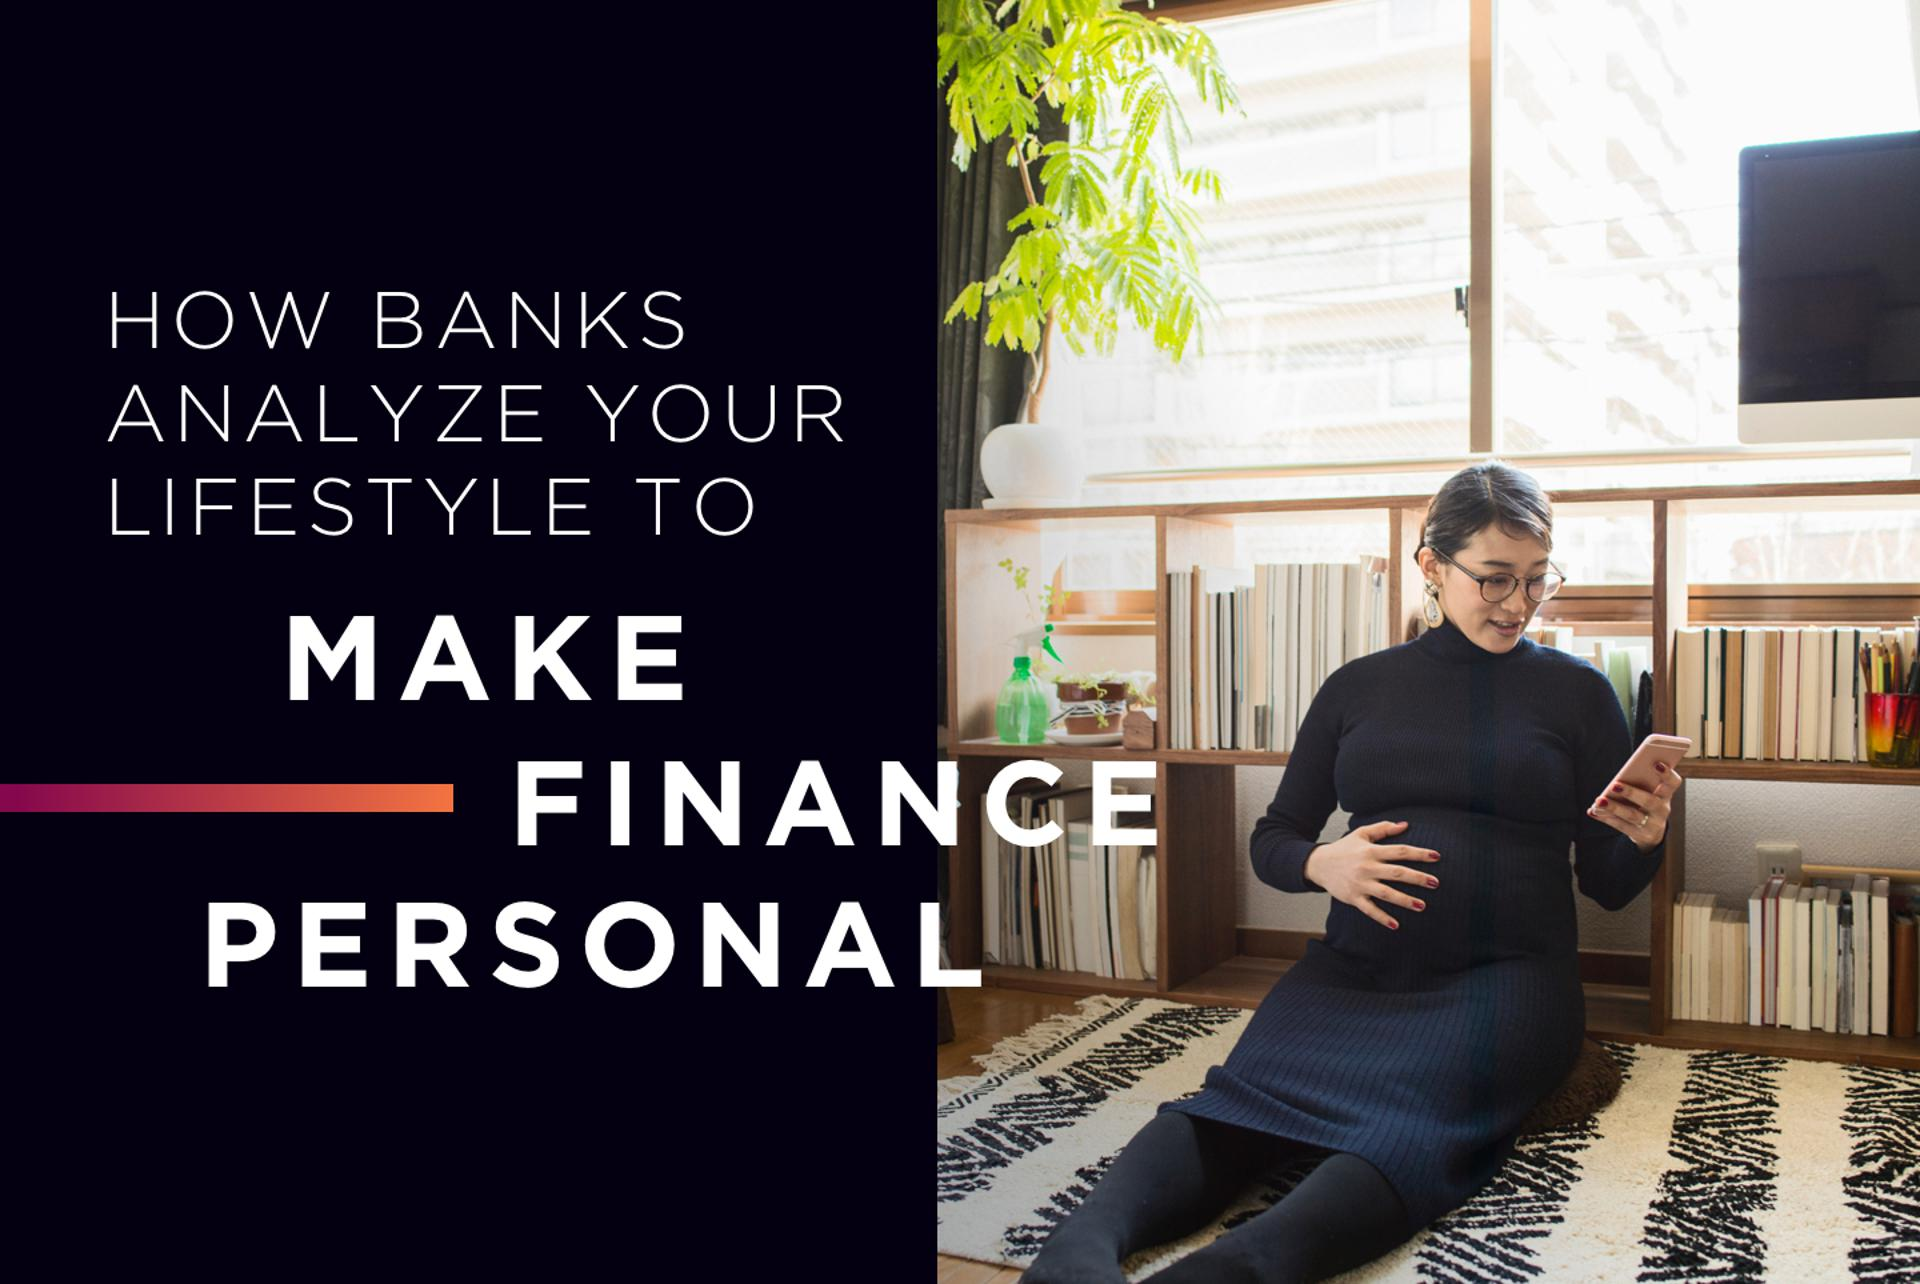 How Banks Analyze Your Lifestyle To Make Finance Personal